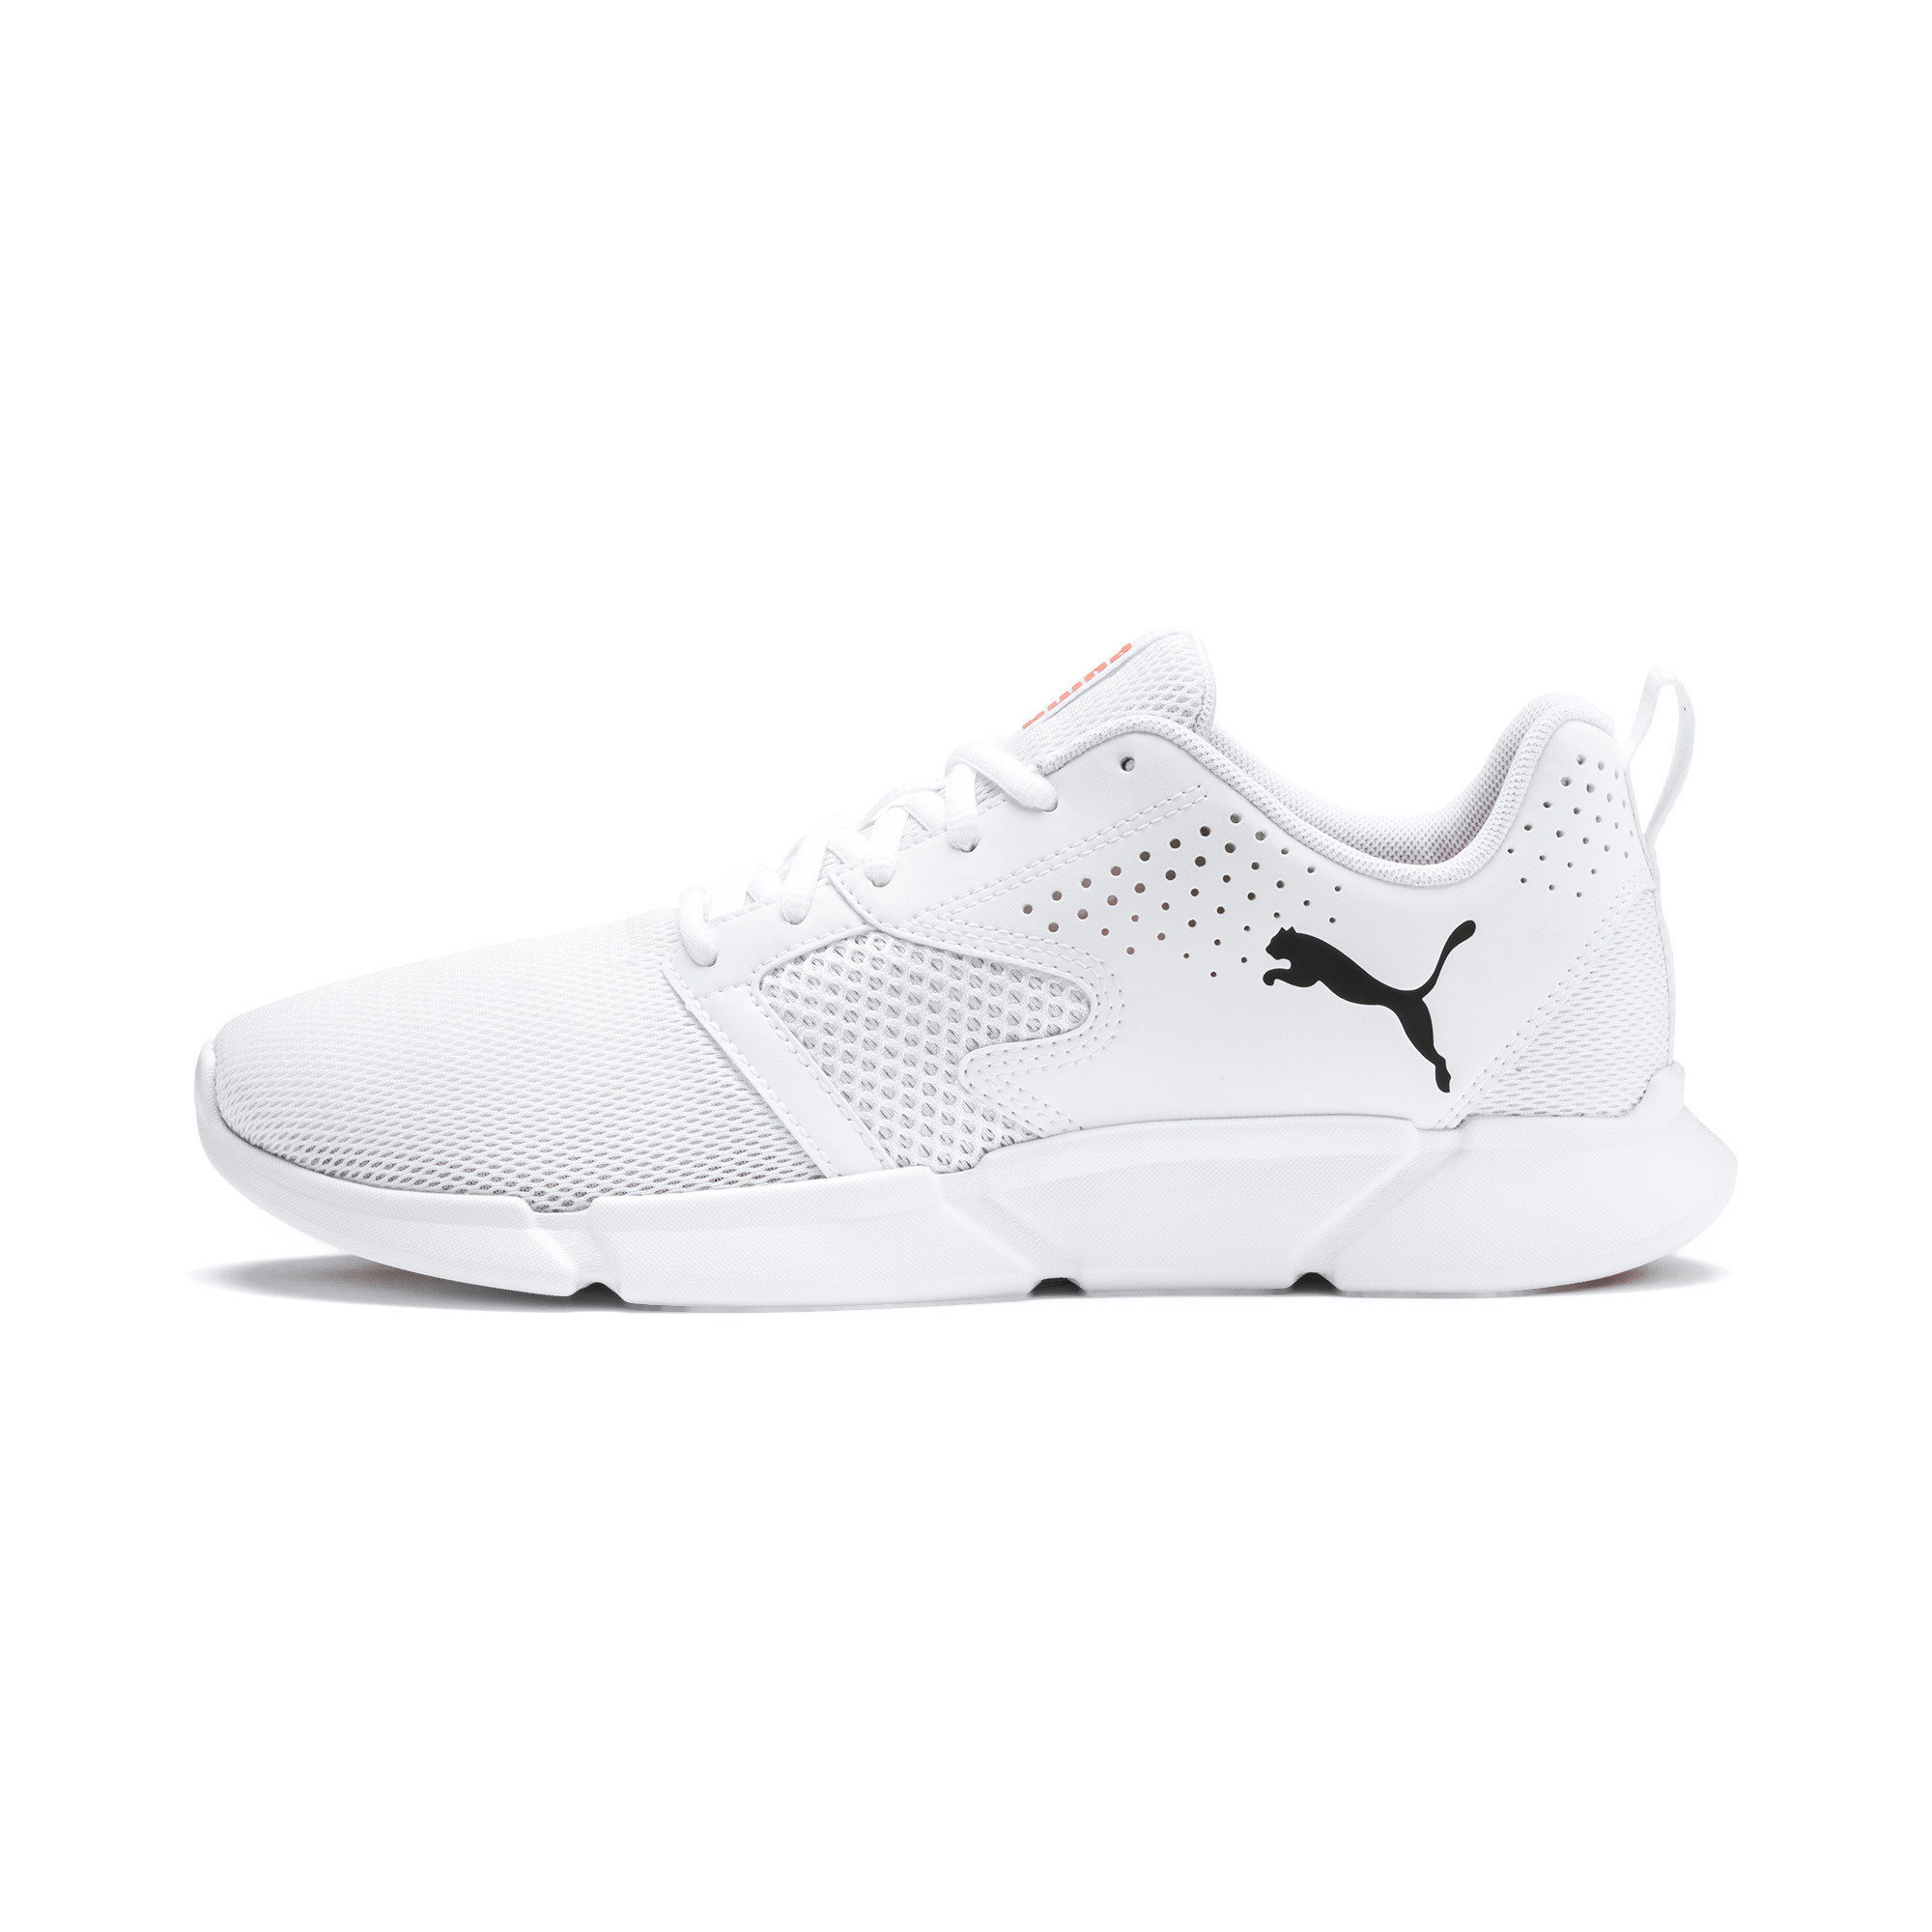 PUMA-INTERFLEX-Modern-Men-039-s-Sneakers-Unisex-Shoe-Running thumbnail 9